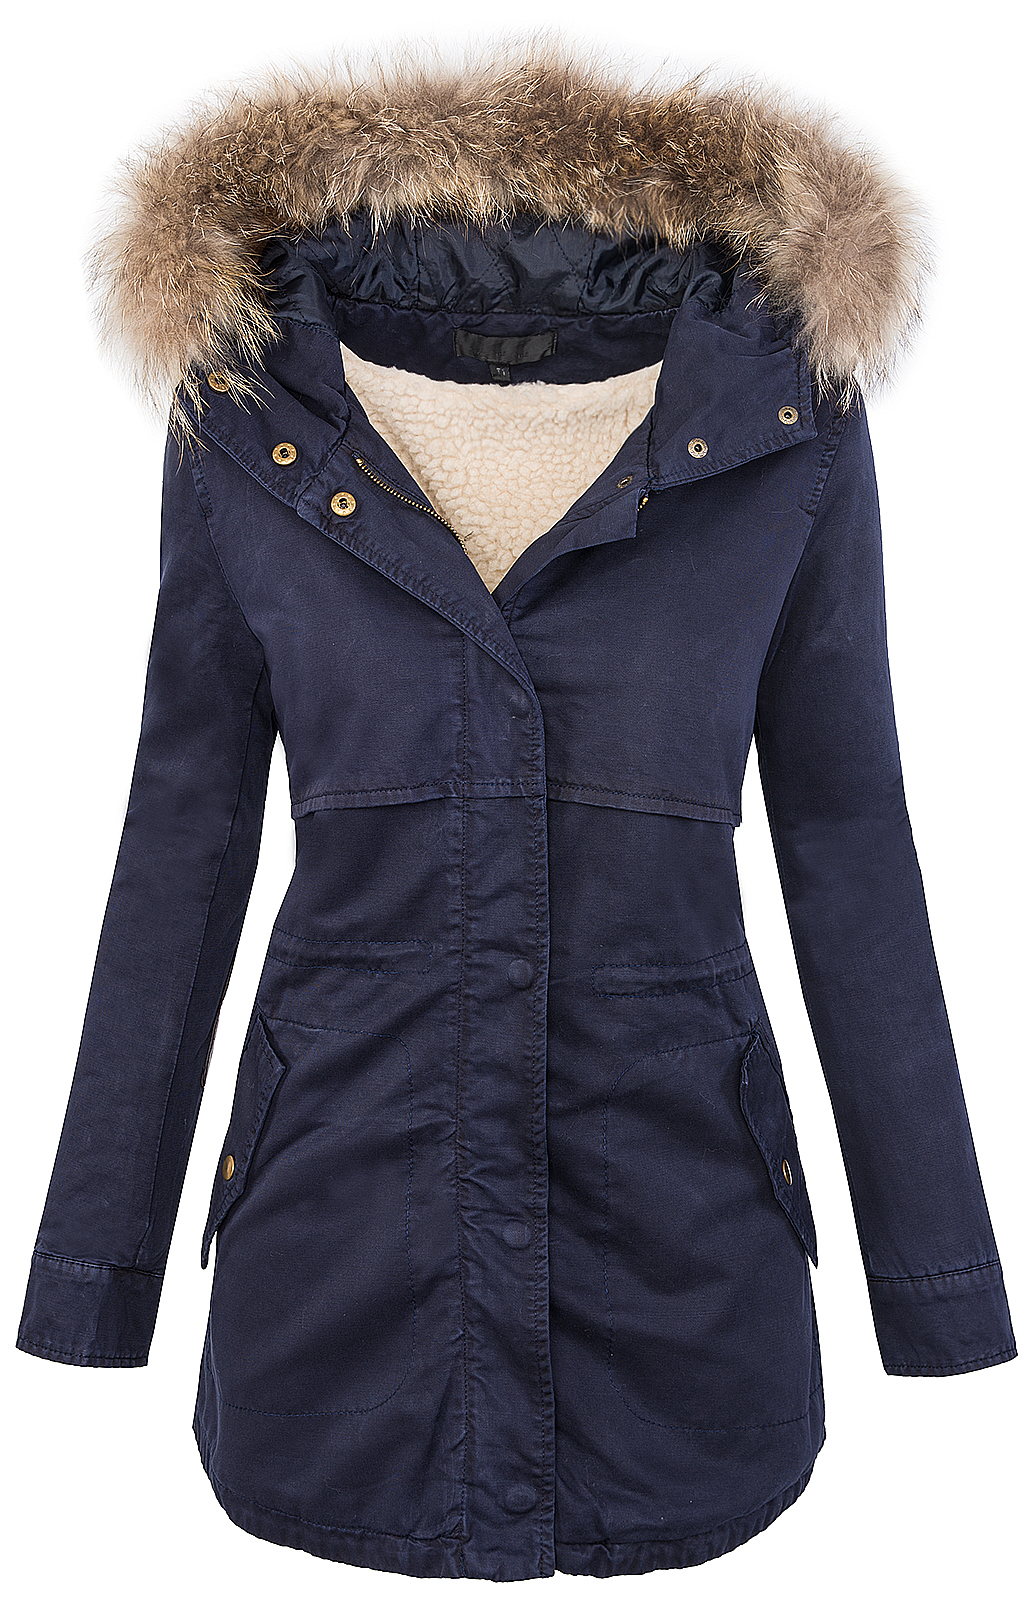 parka mit fellkapuze damen matogla h4f damen arctic winter parka mantel jacke navy navahoo. Black Bedroom Furniture Sets. Home Design Ideas